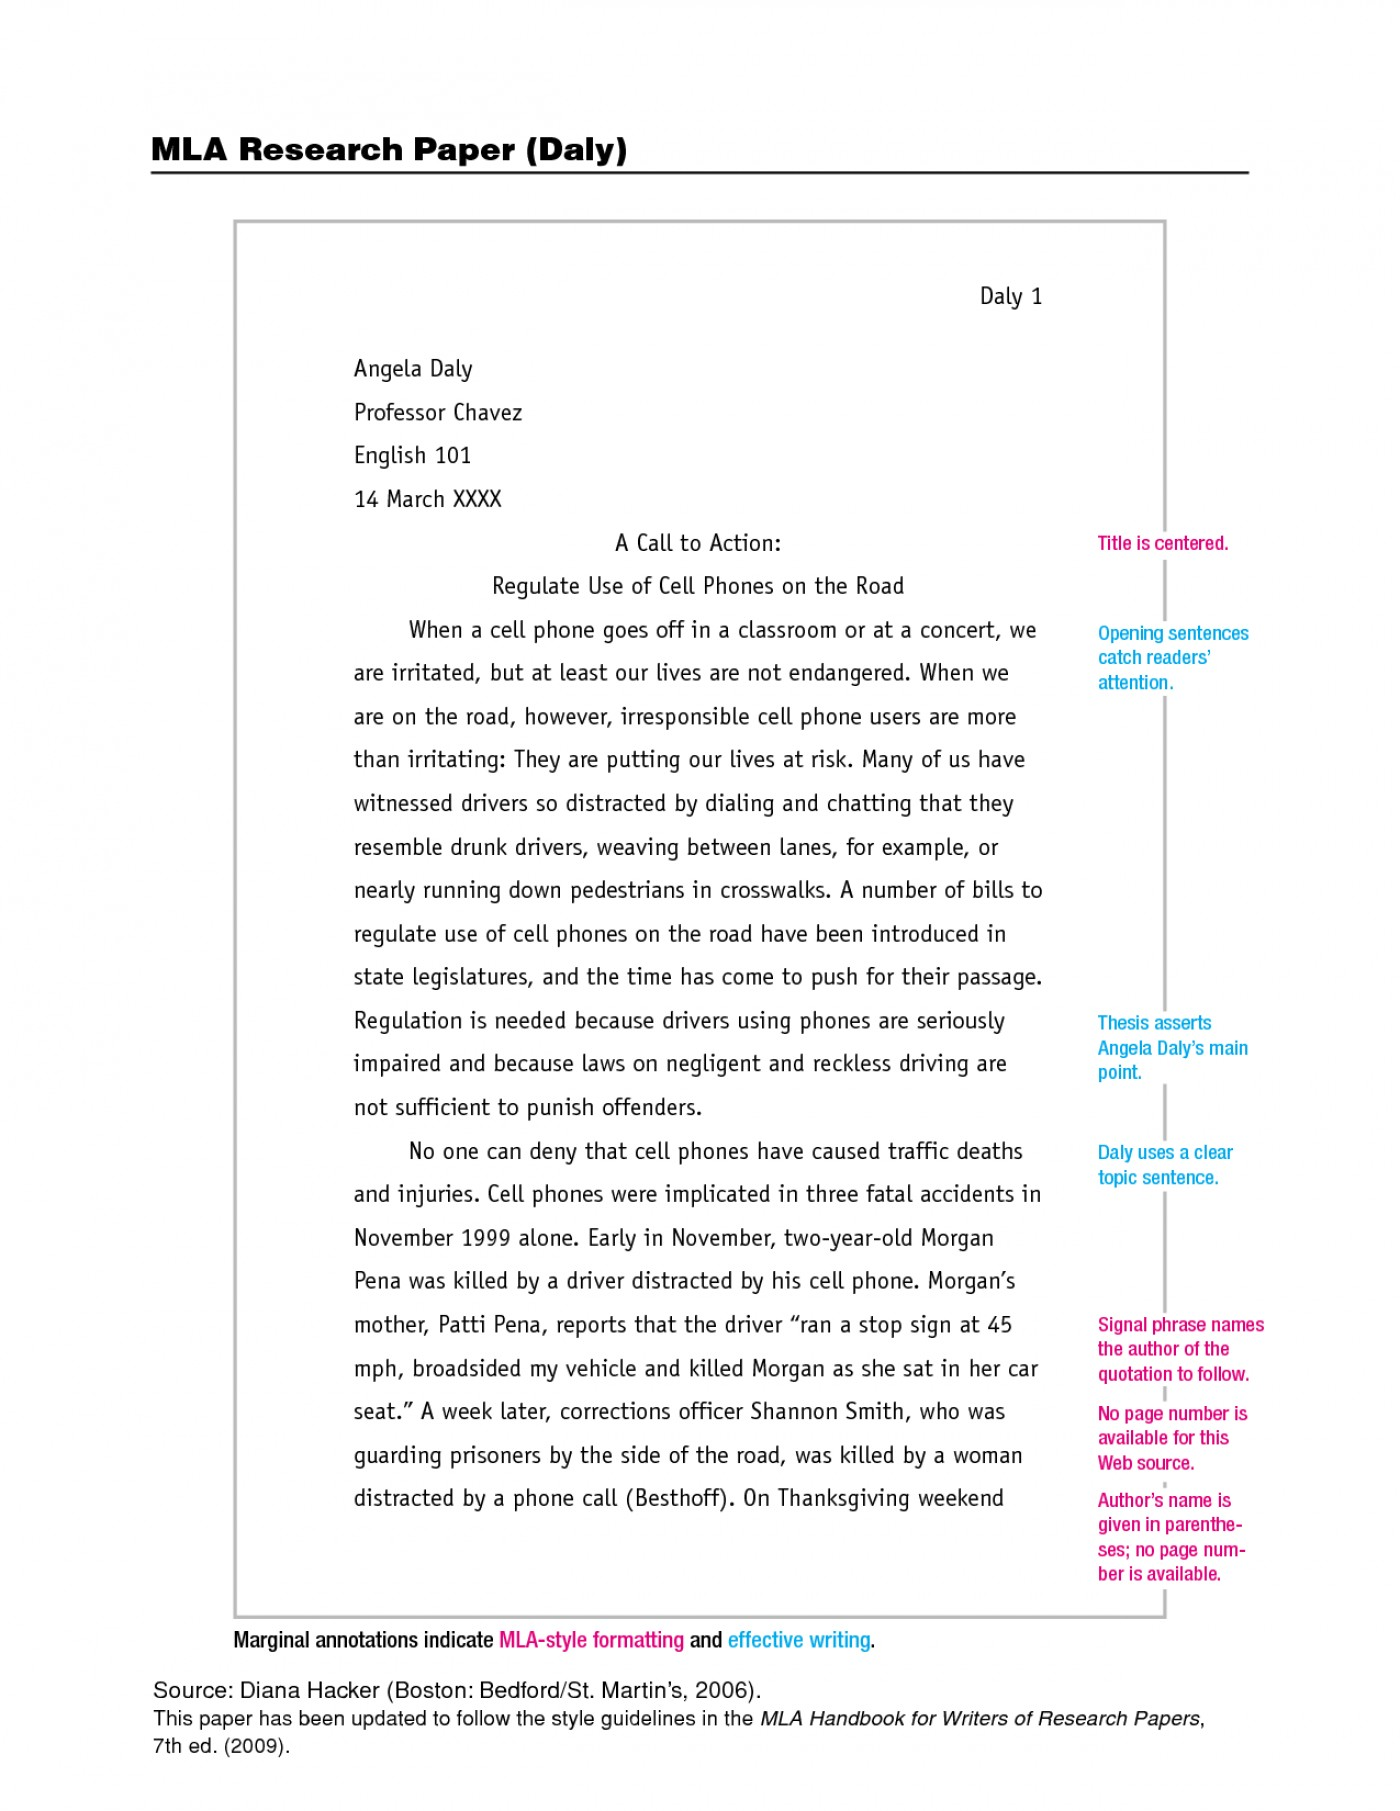 002 Research Paper Format Stunning Apa Writing Style Sample 2010 1400